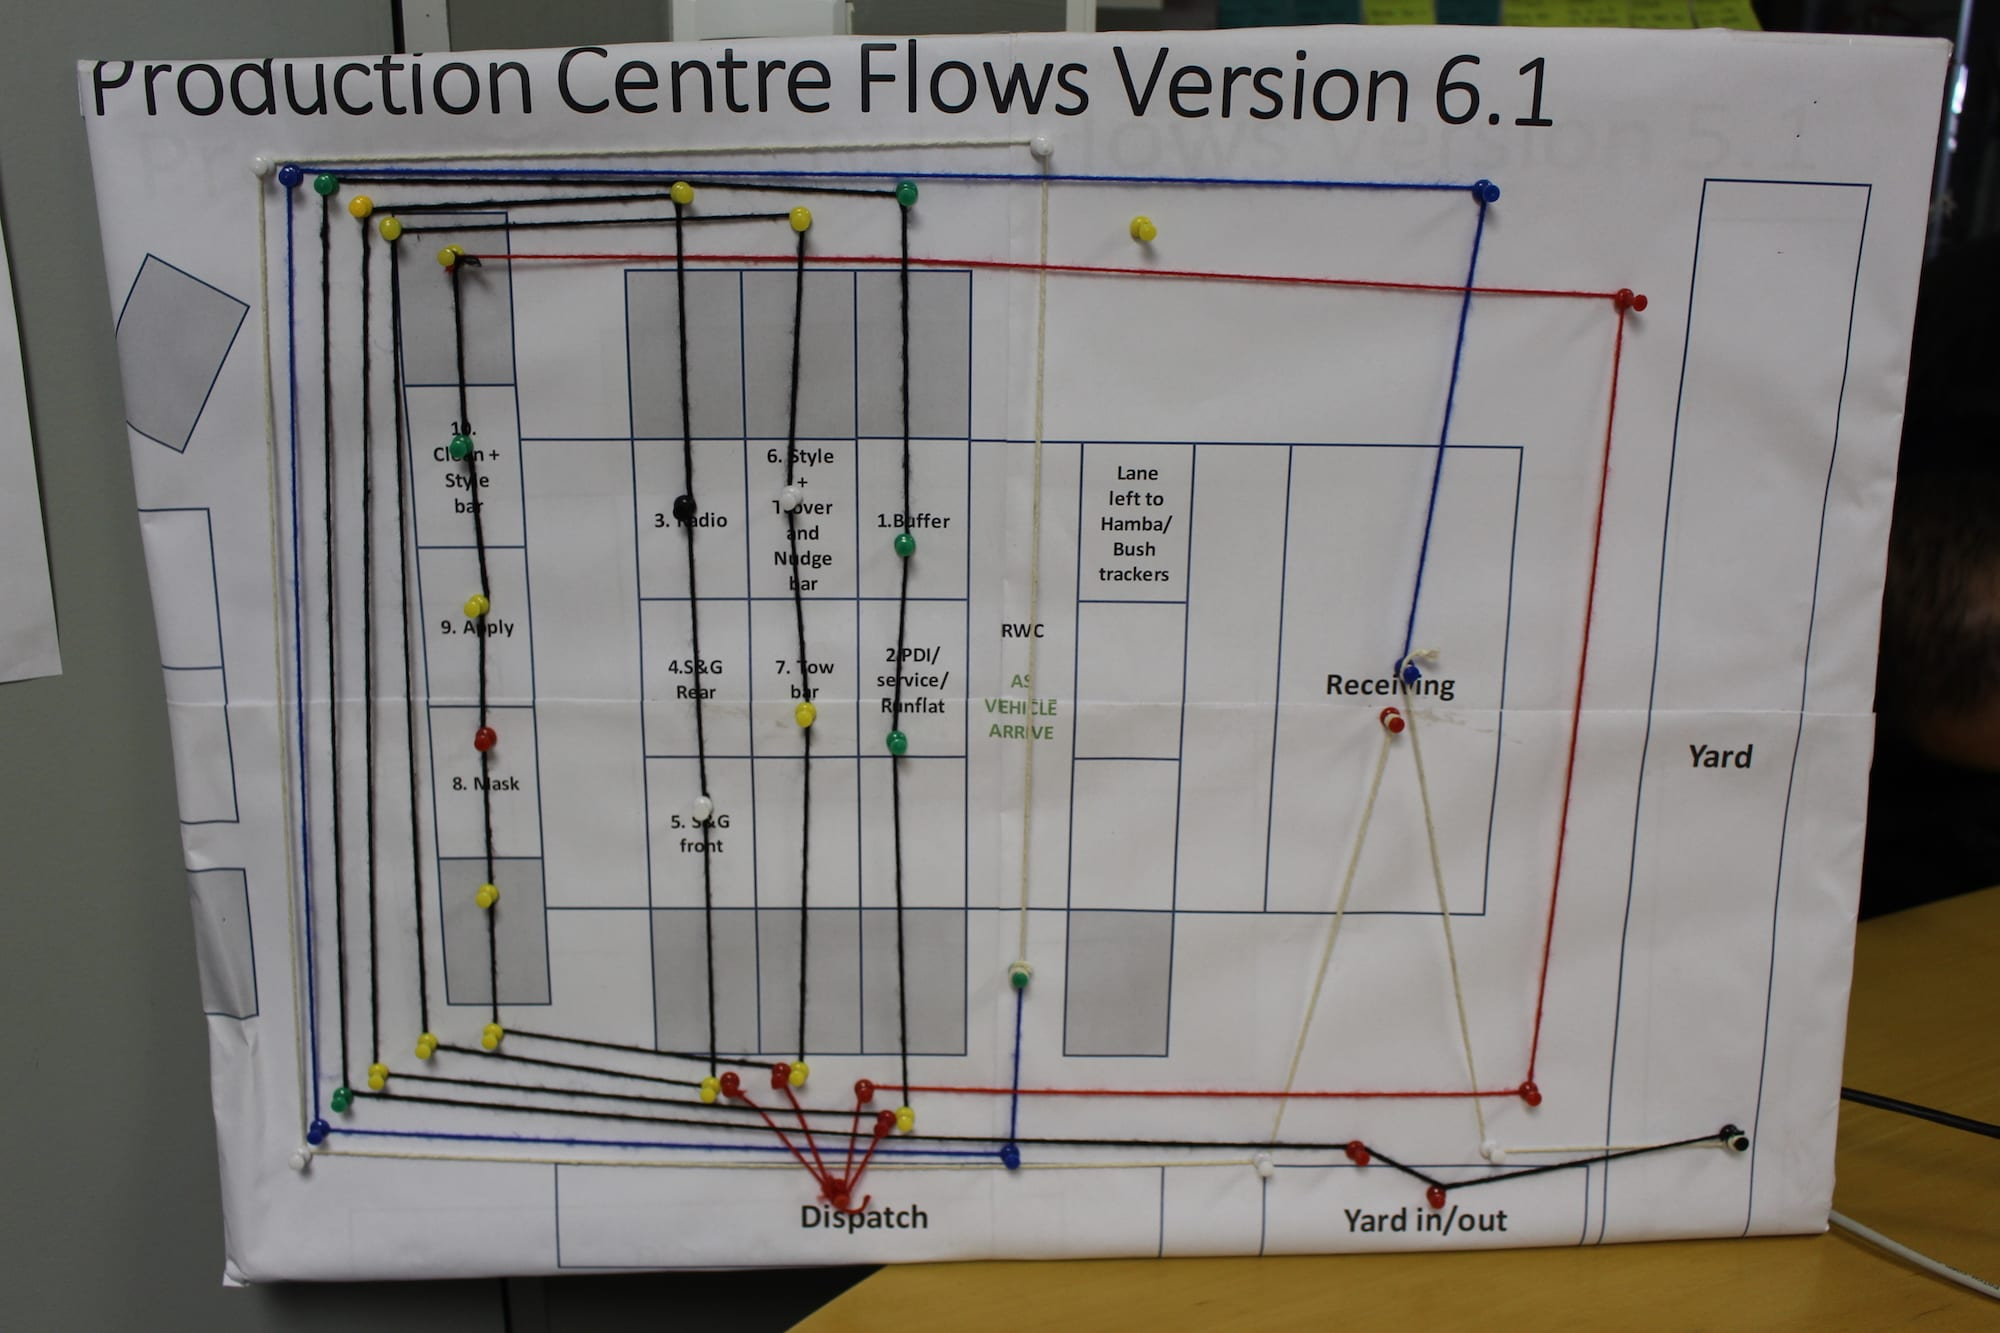 The impact of flow lean management